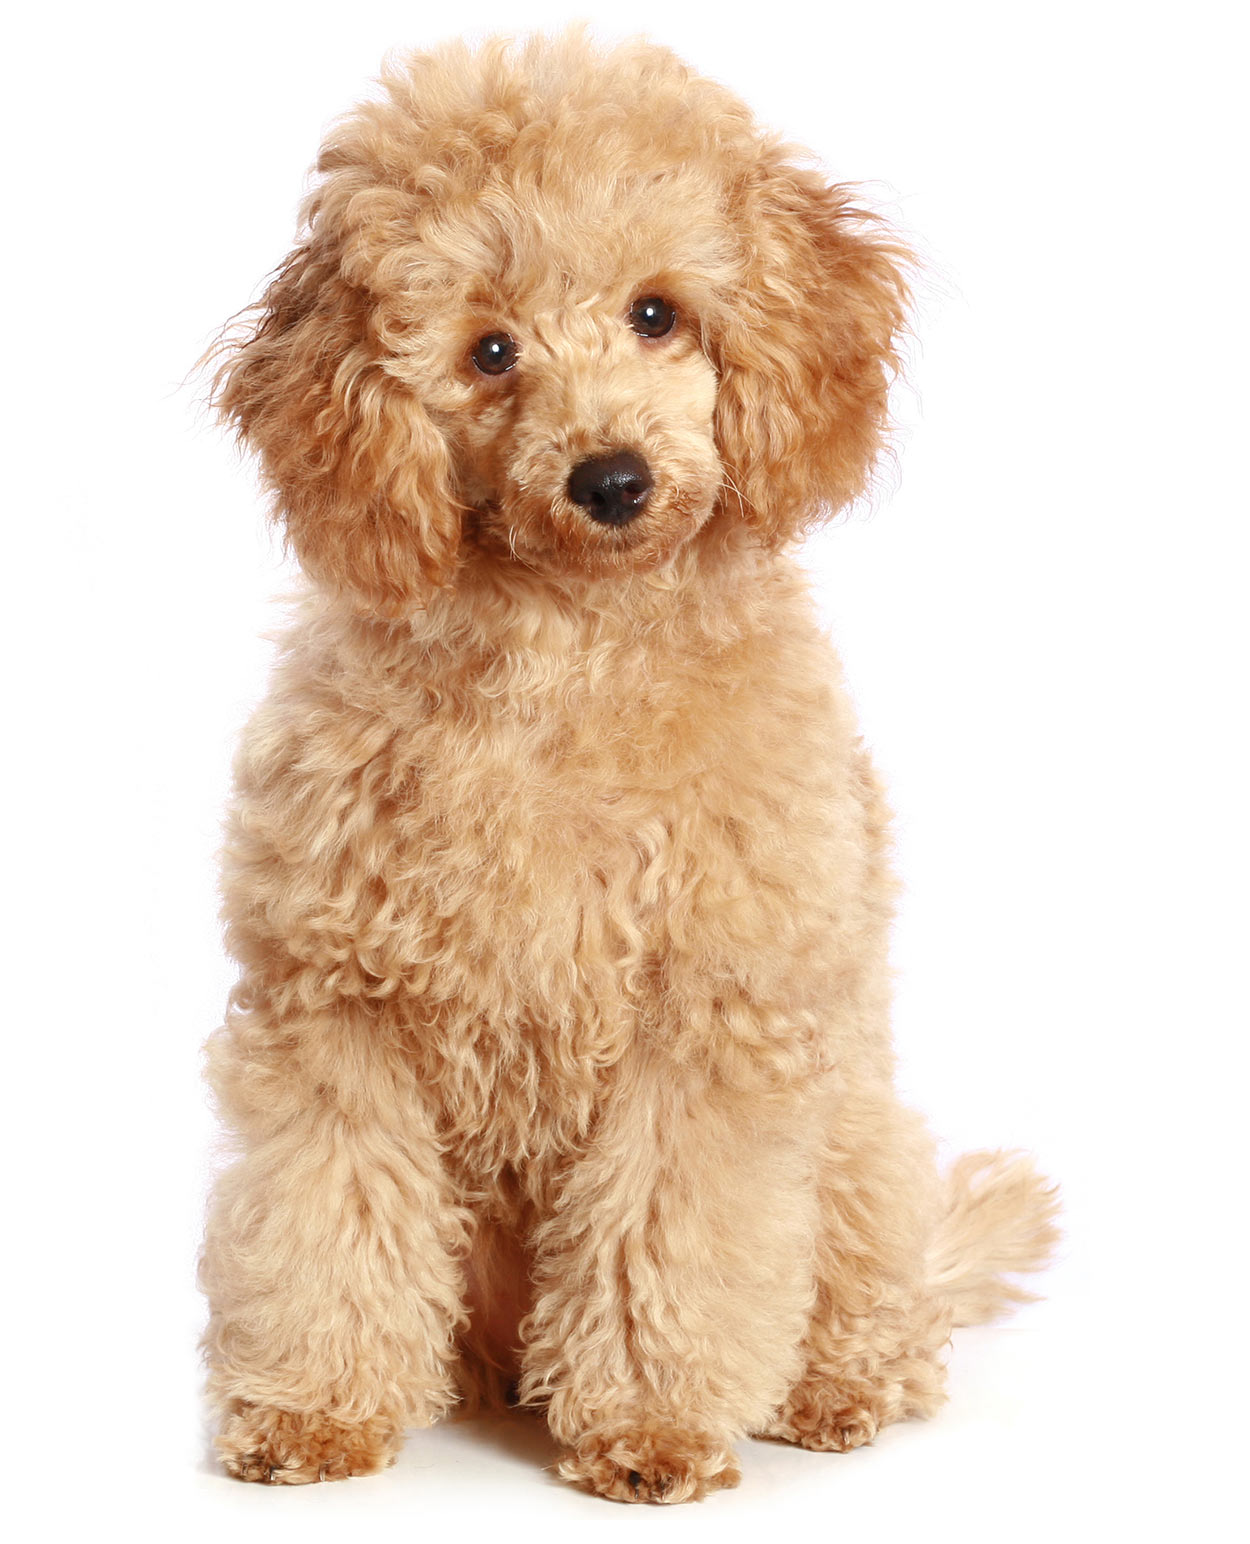 toy poodle - a contender for smallest dog in the world